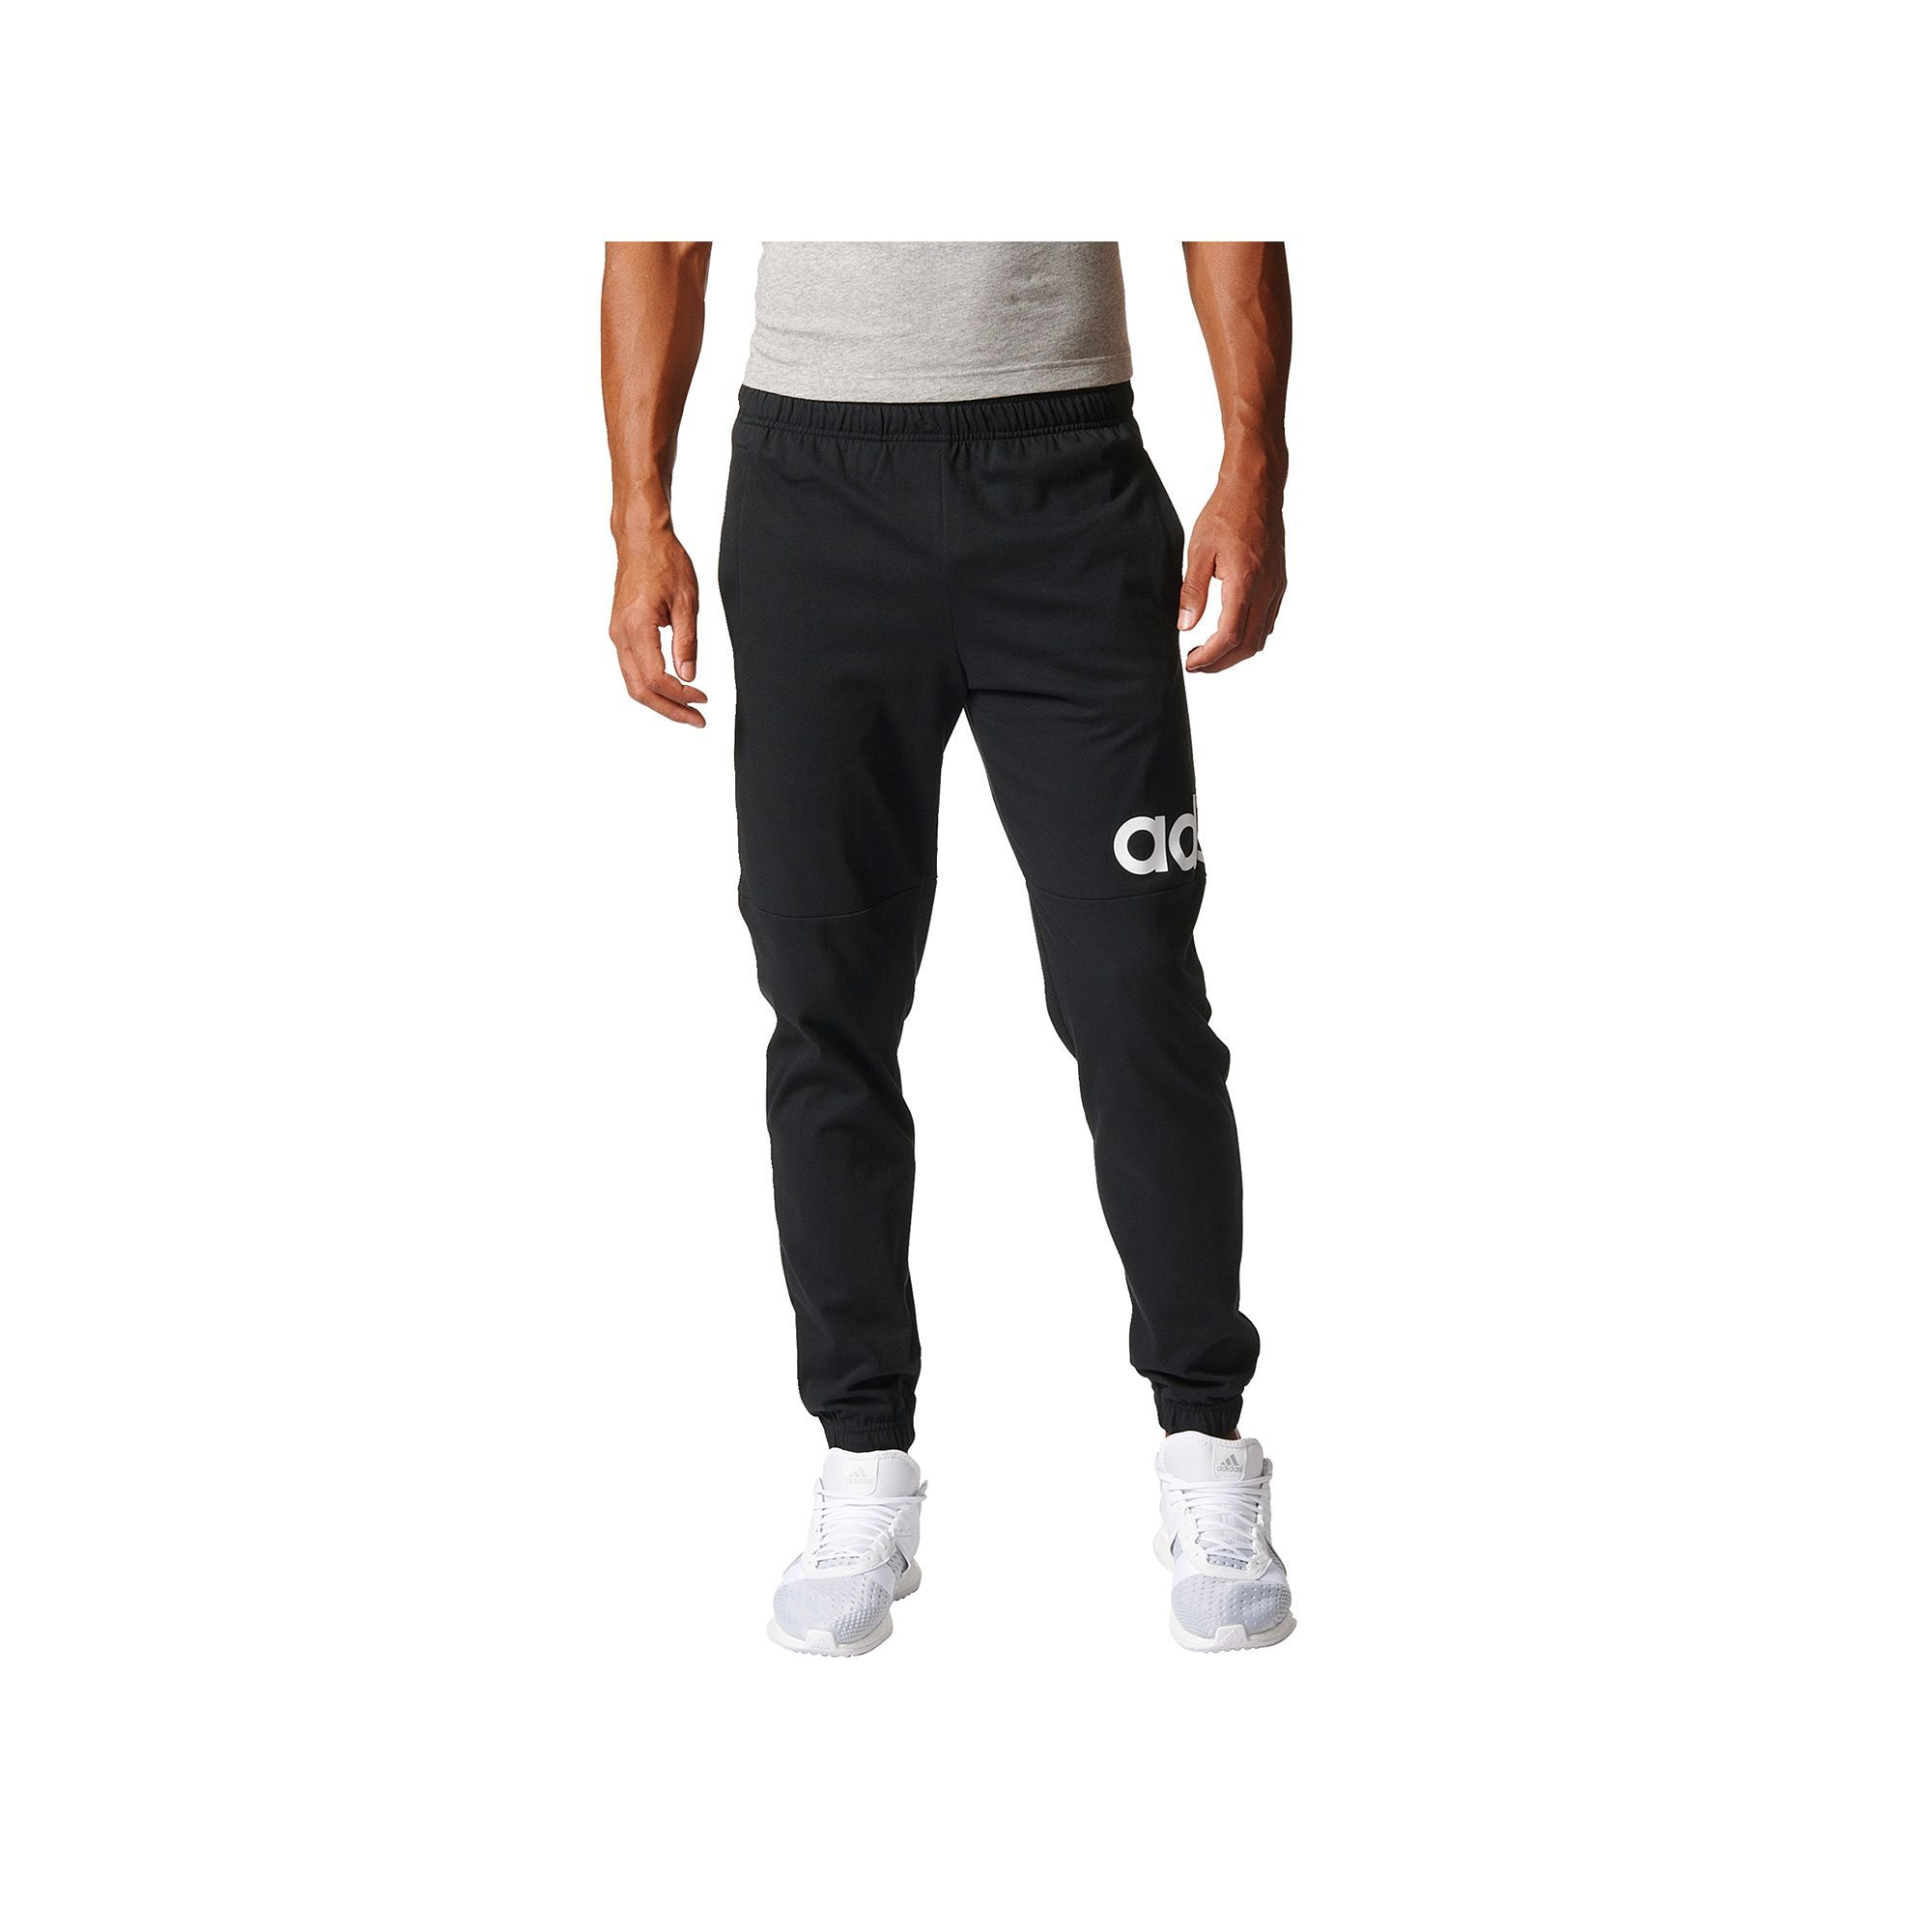 d155cf1f7 Men's Adidas Essential Logo Jersey Pants, Size: Medium, Black ...